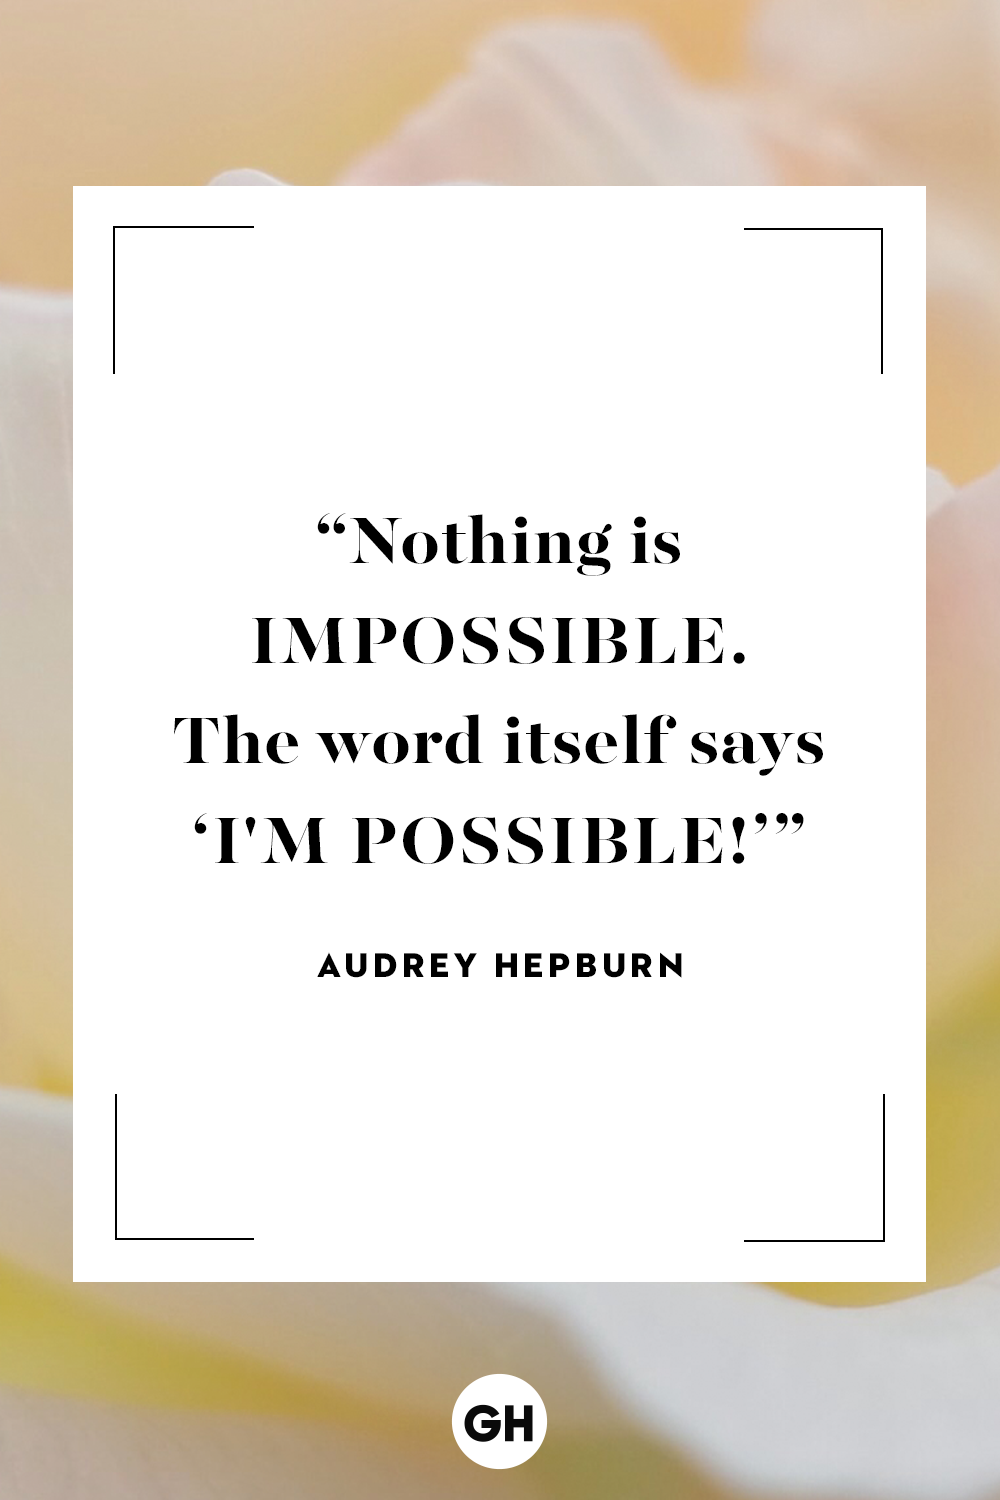 50 Short Inspirational Quotes We Love - Best Positive ...